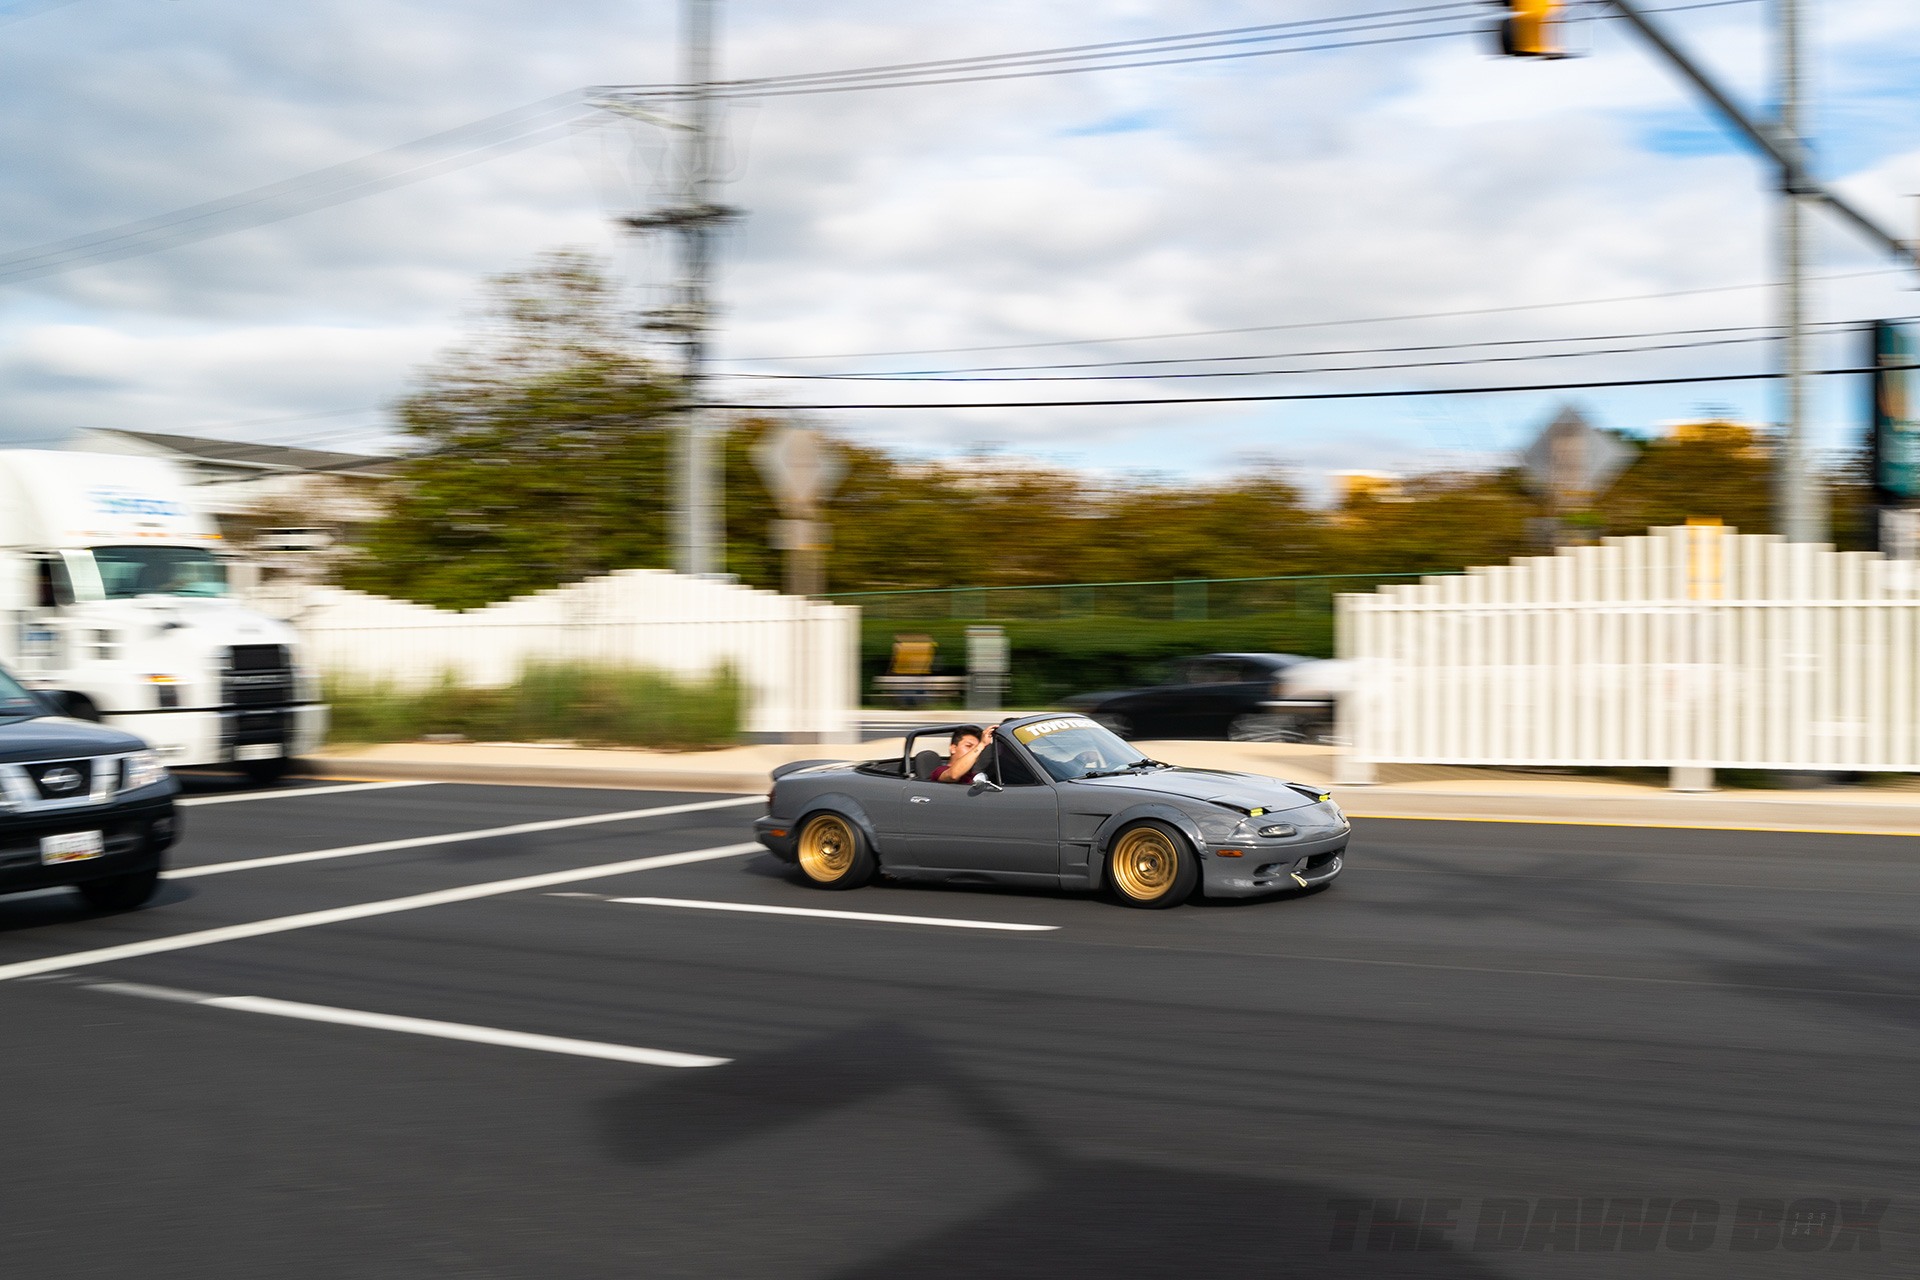 Slammed and modified Mazda Miata